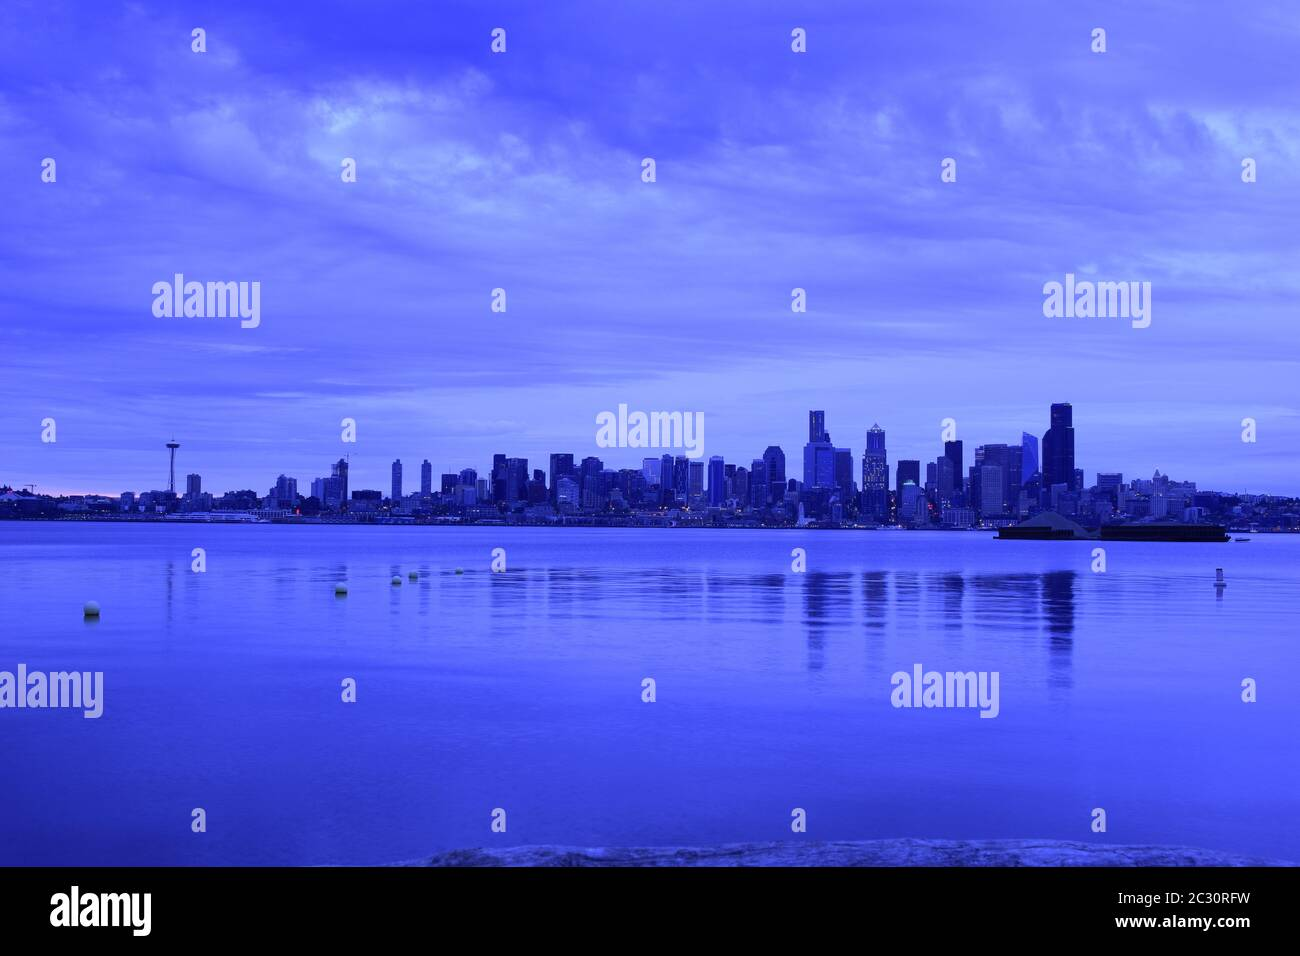 Iconic Seattle Skyline From Across The Puget Sound During A Dramatically Cloudy Dawn Stock Photo